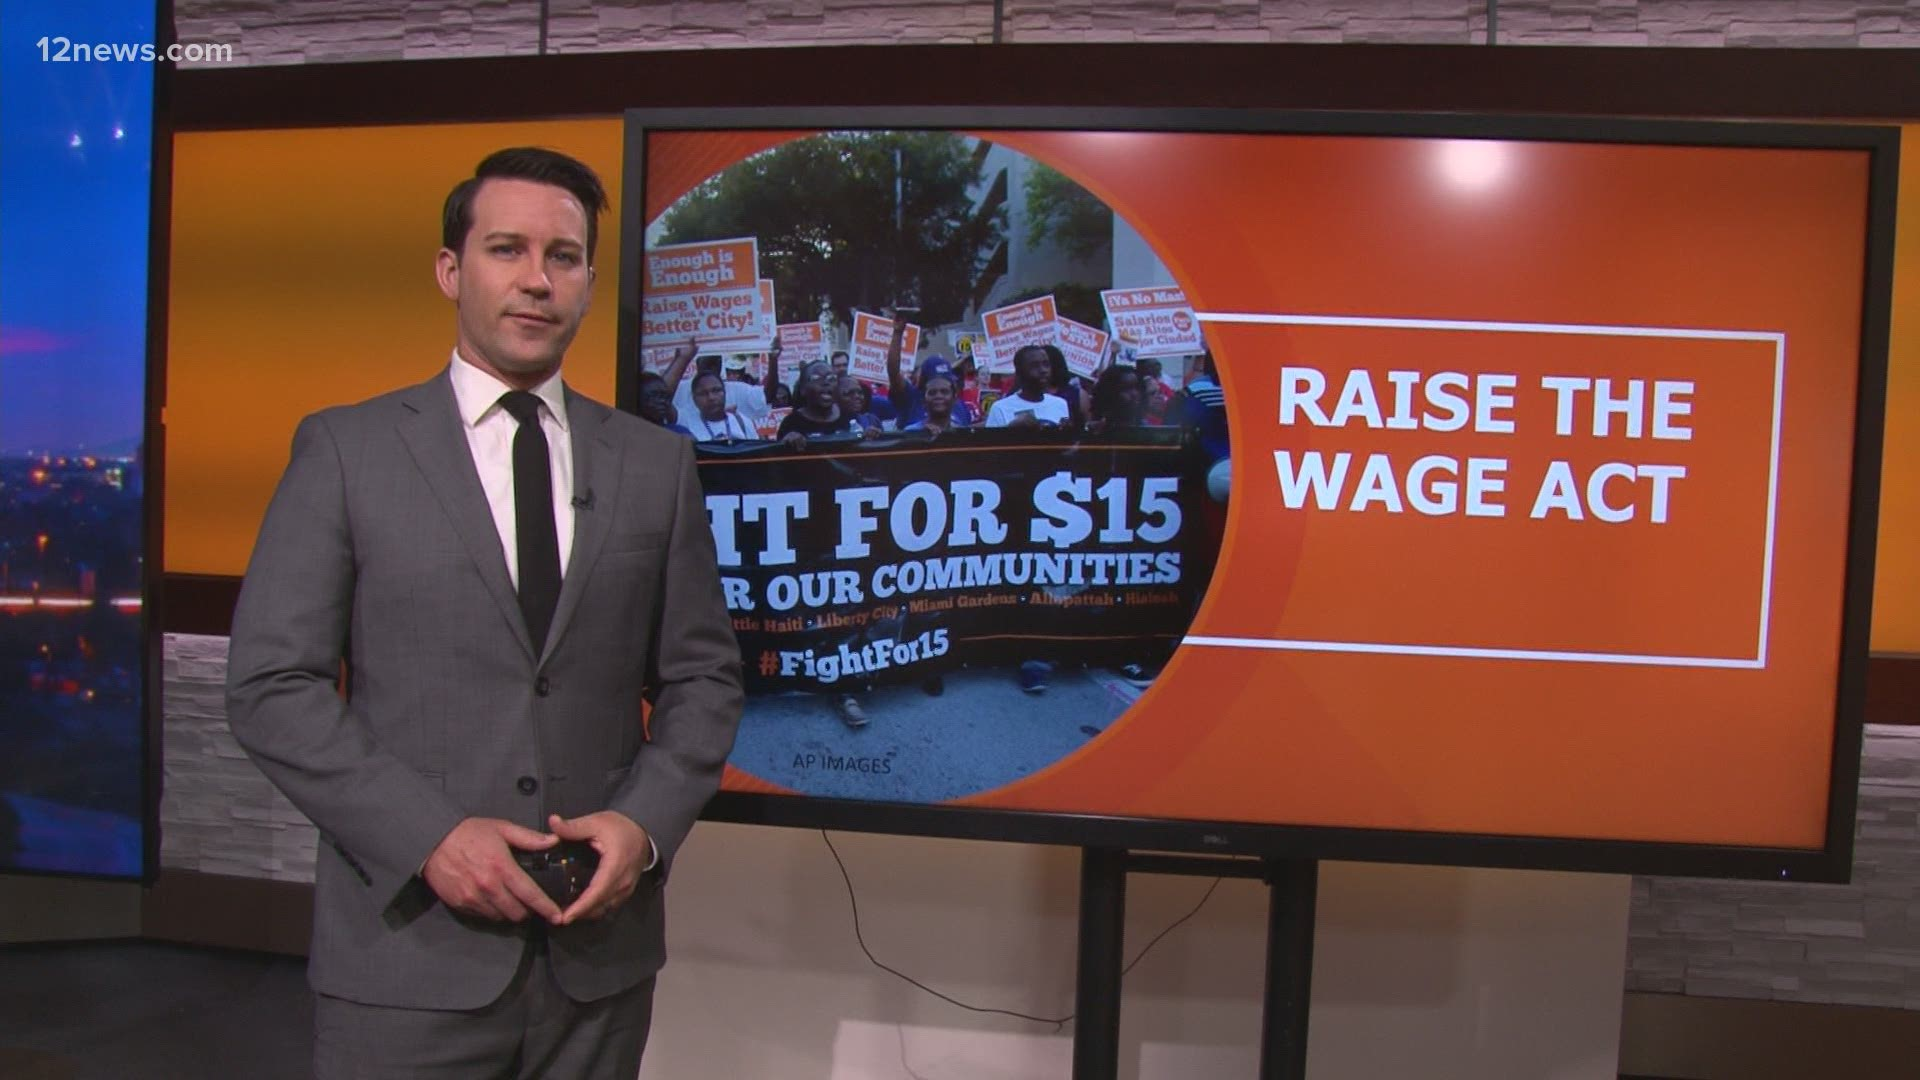 15 Minimum Wage Not Enough To Keep Arizonans Out Of Poverty Experts Say 12news Com